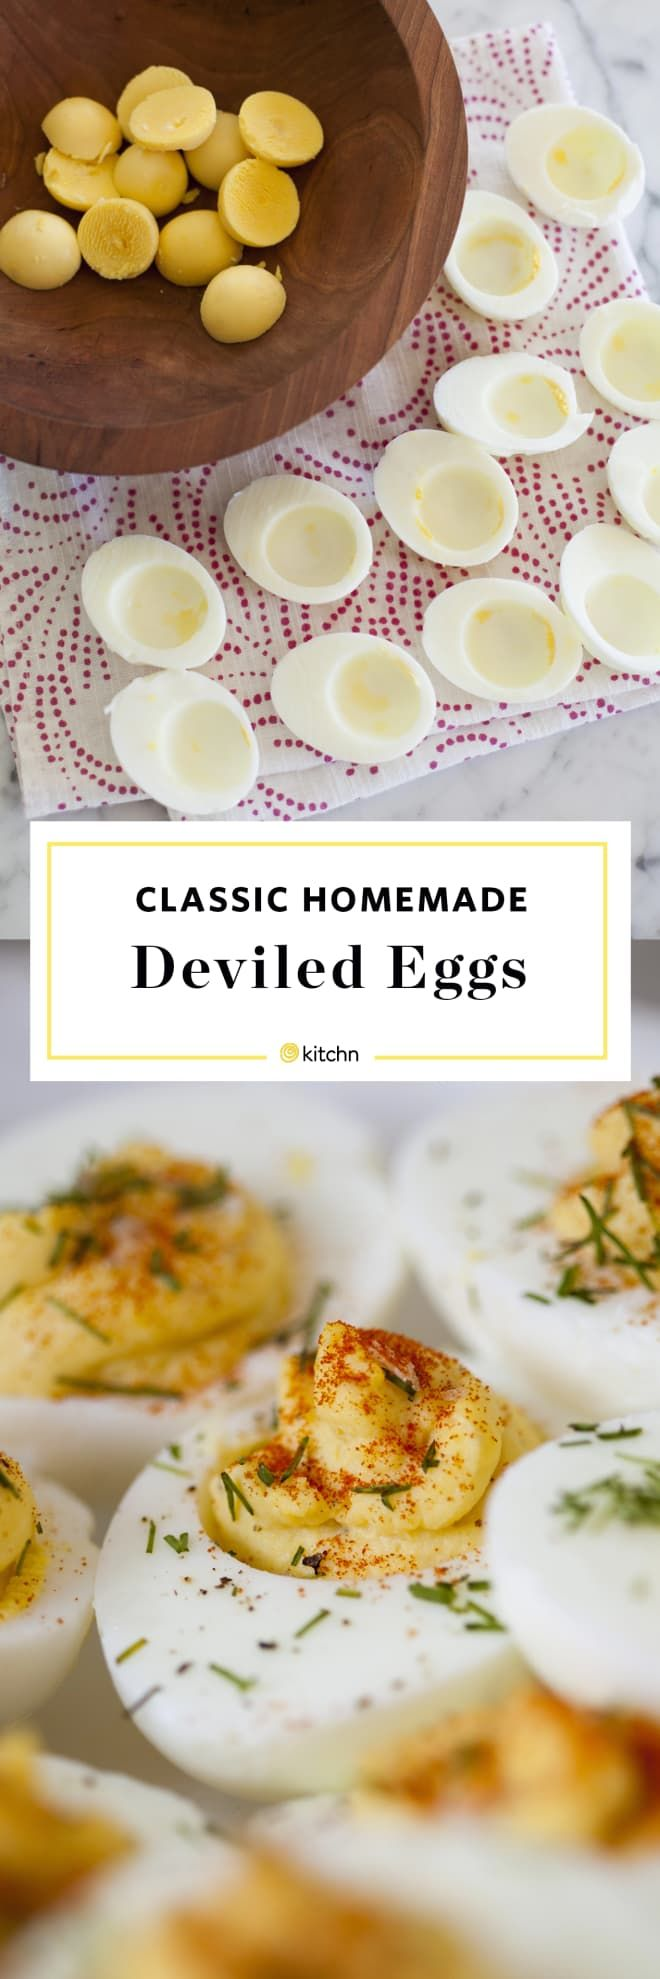 Photo of How To Make Deviled Eggs